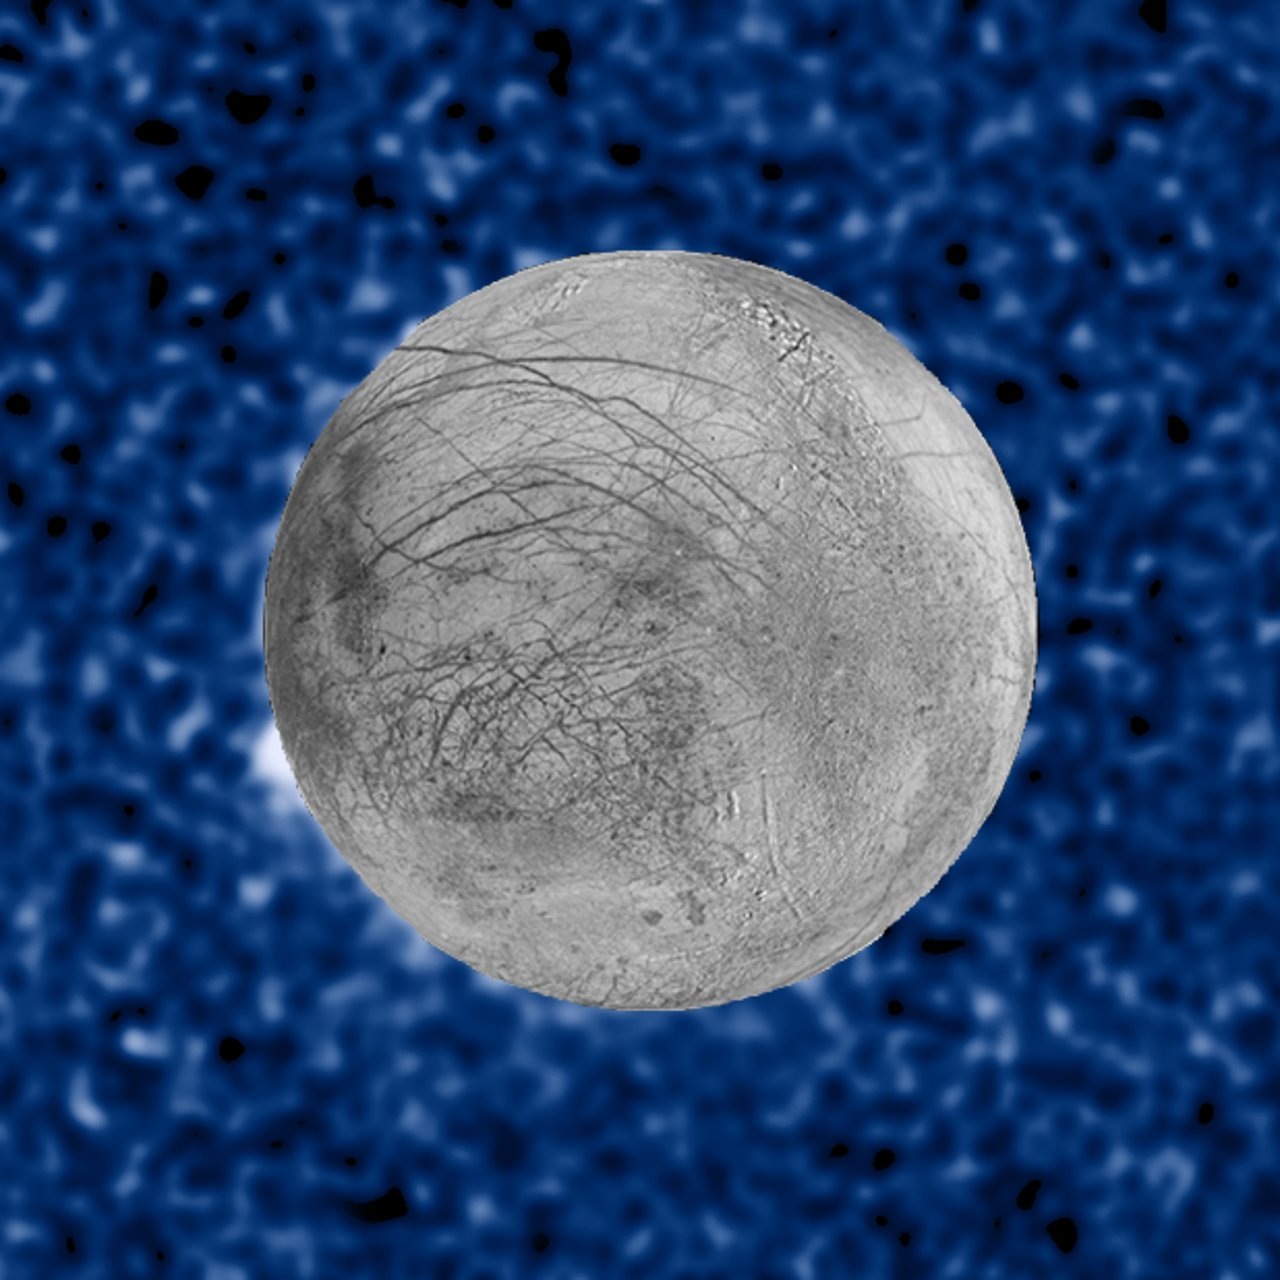 Plume Erupting From Europa – 17 March 2014